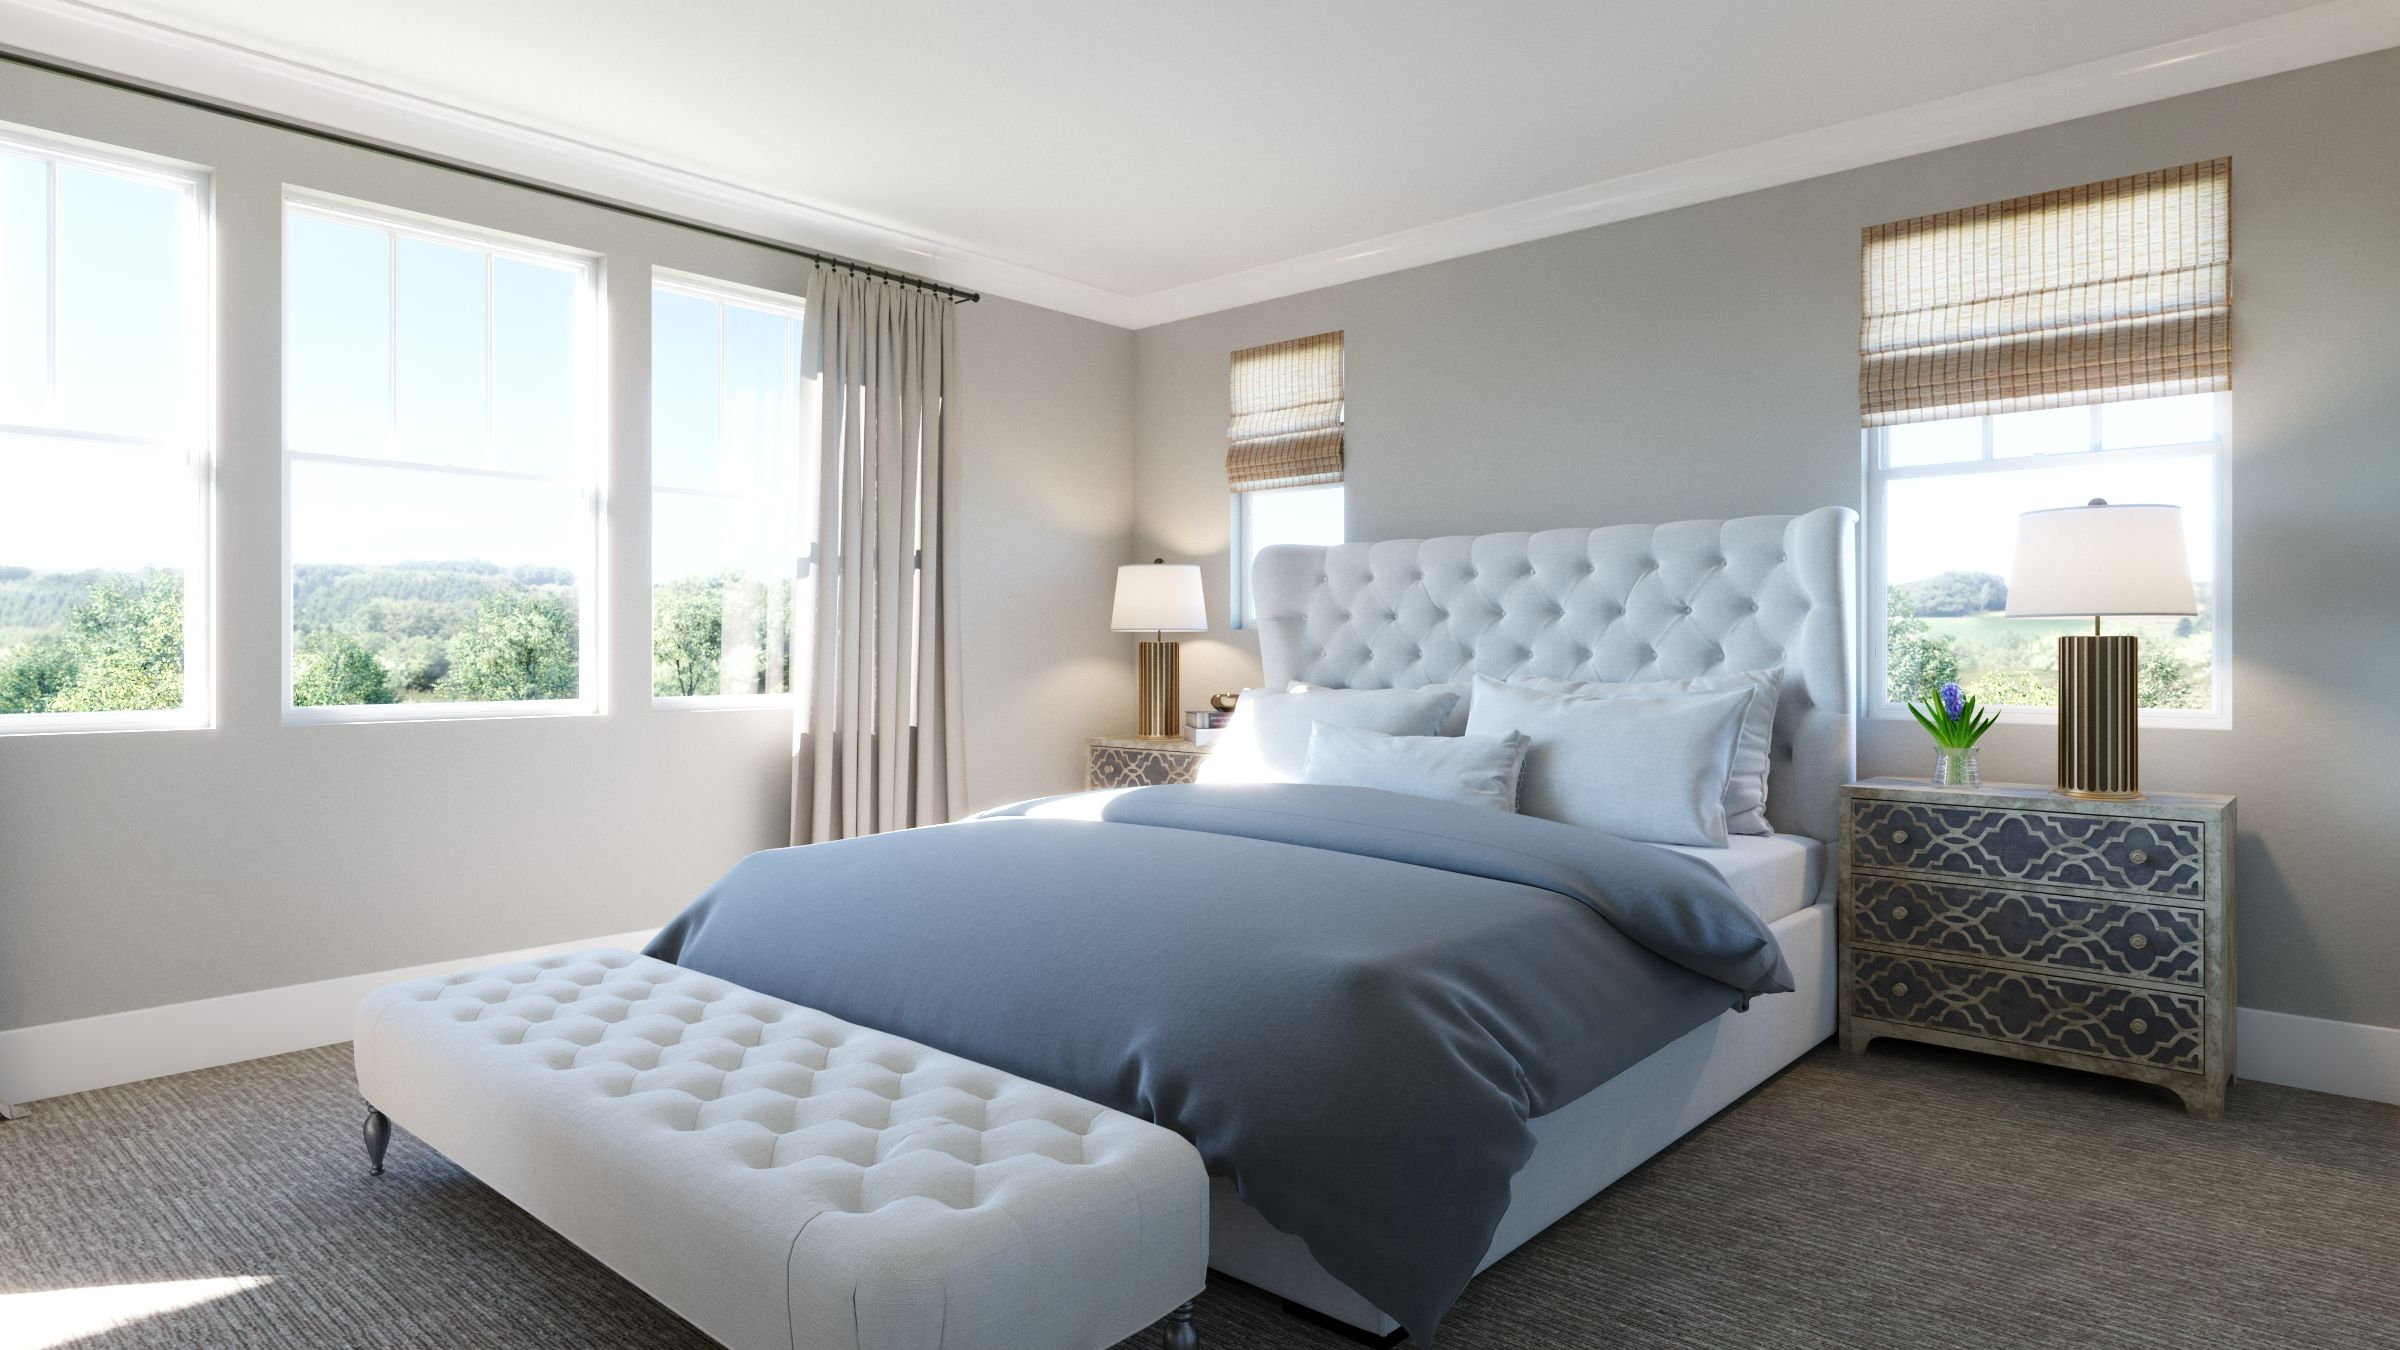 Bedroom featured in the 1D By SummerHill Homes in San Jose, CA